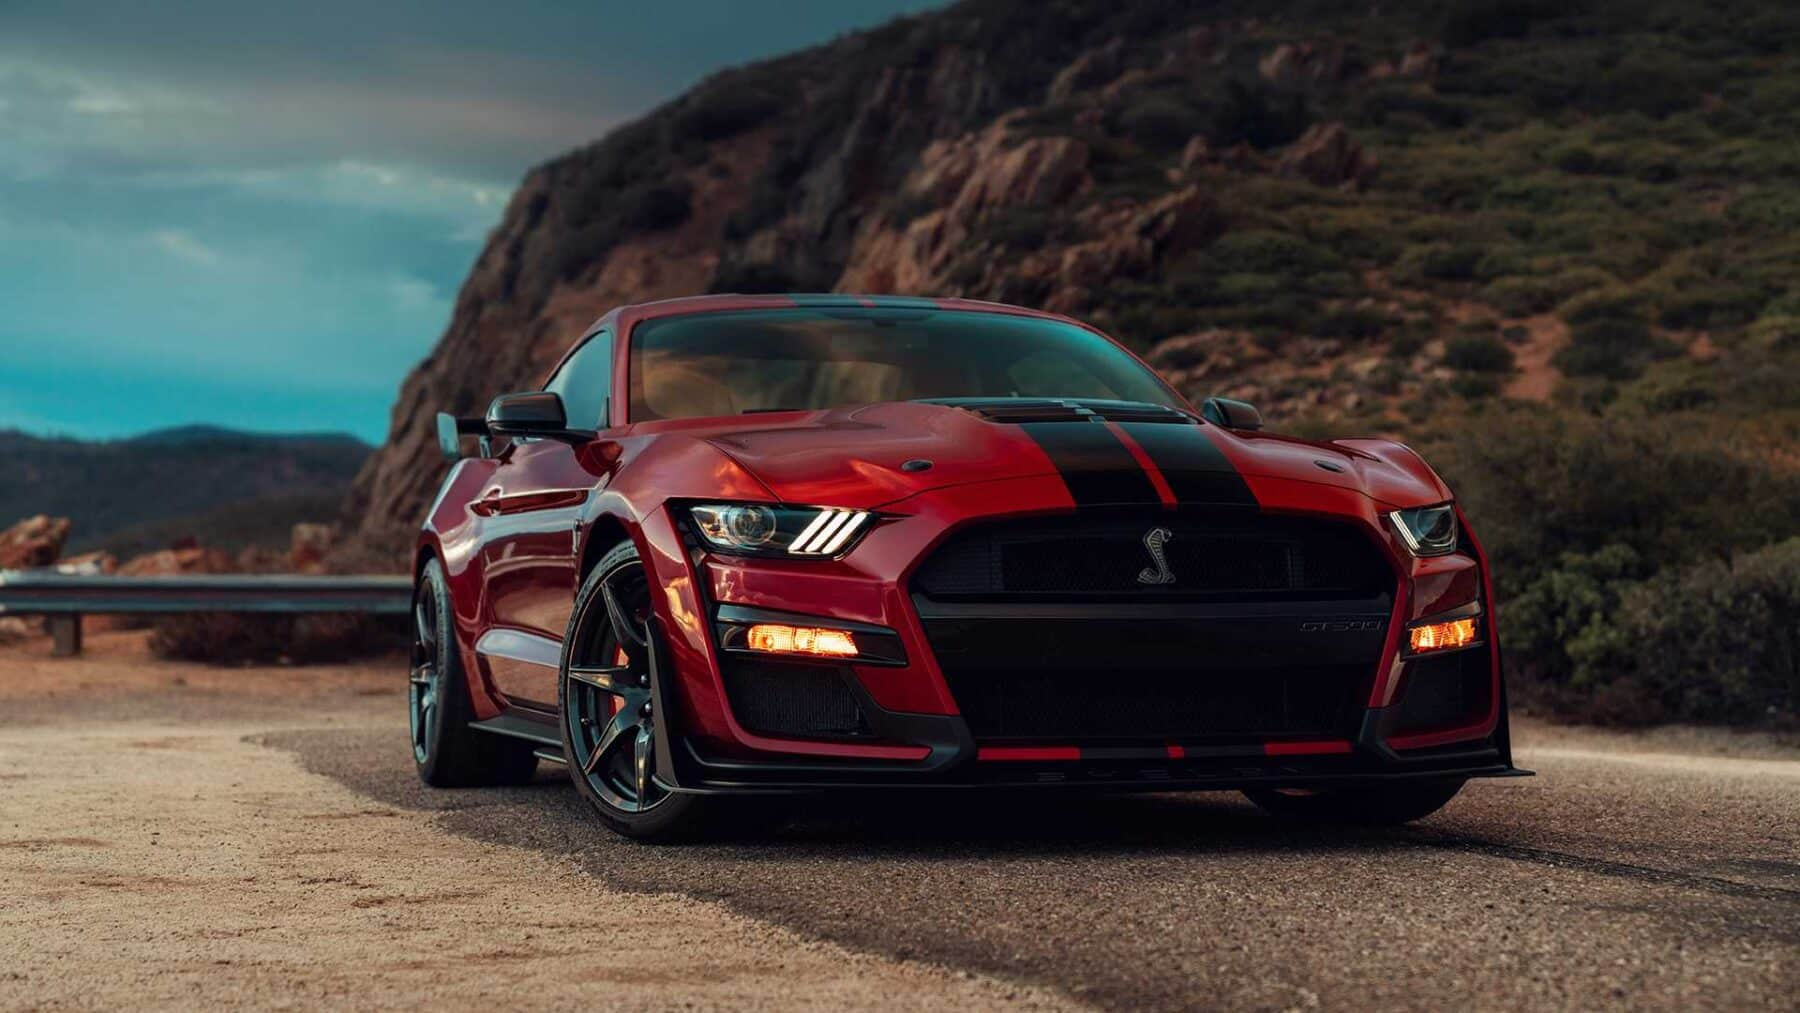 Ford Mustang Shelby GT500: